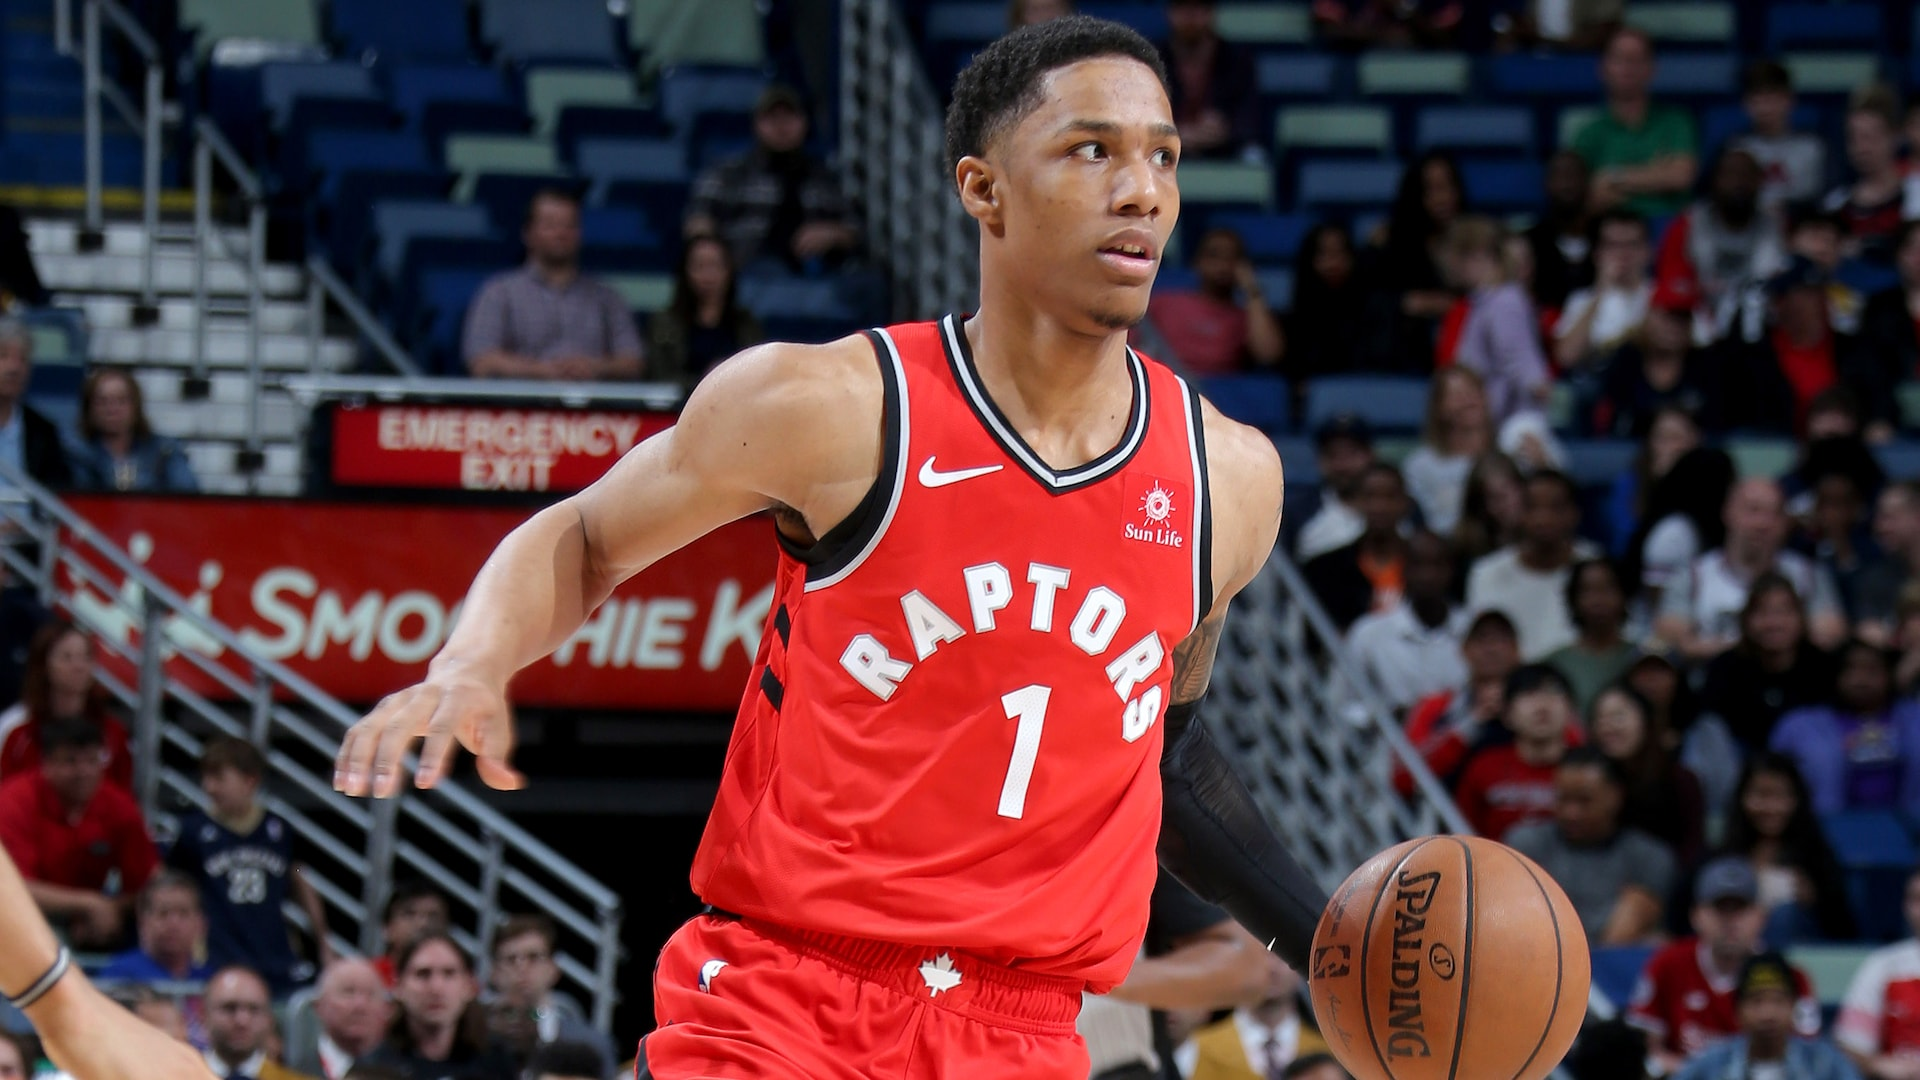 Toronto's Patrick McCaw leaving NBA Campus to treat benign mass on knee